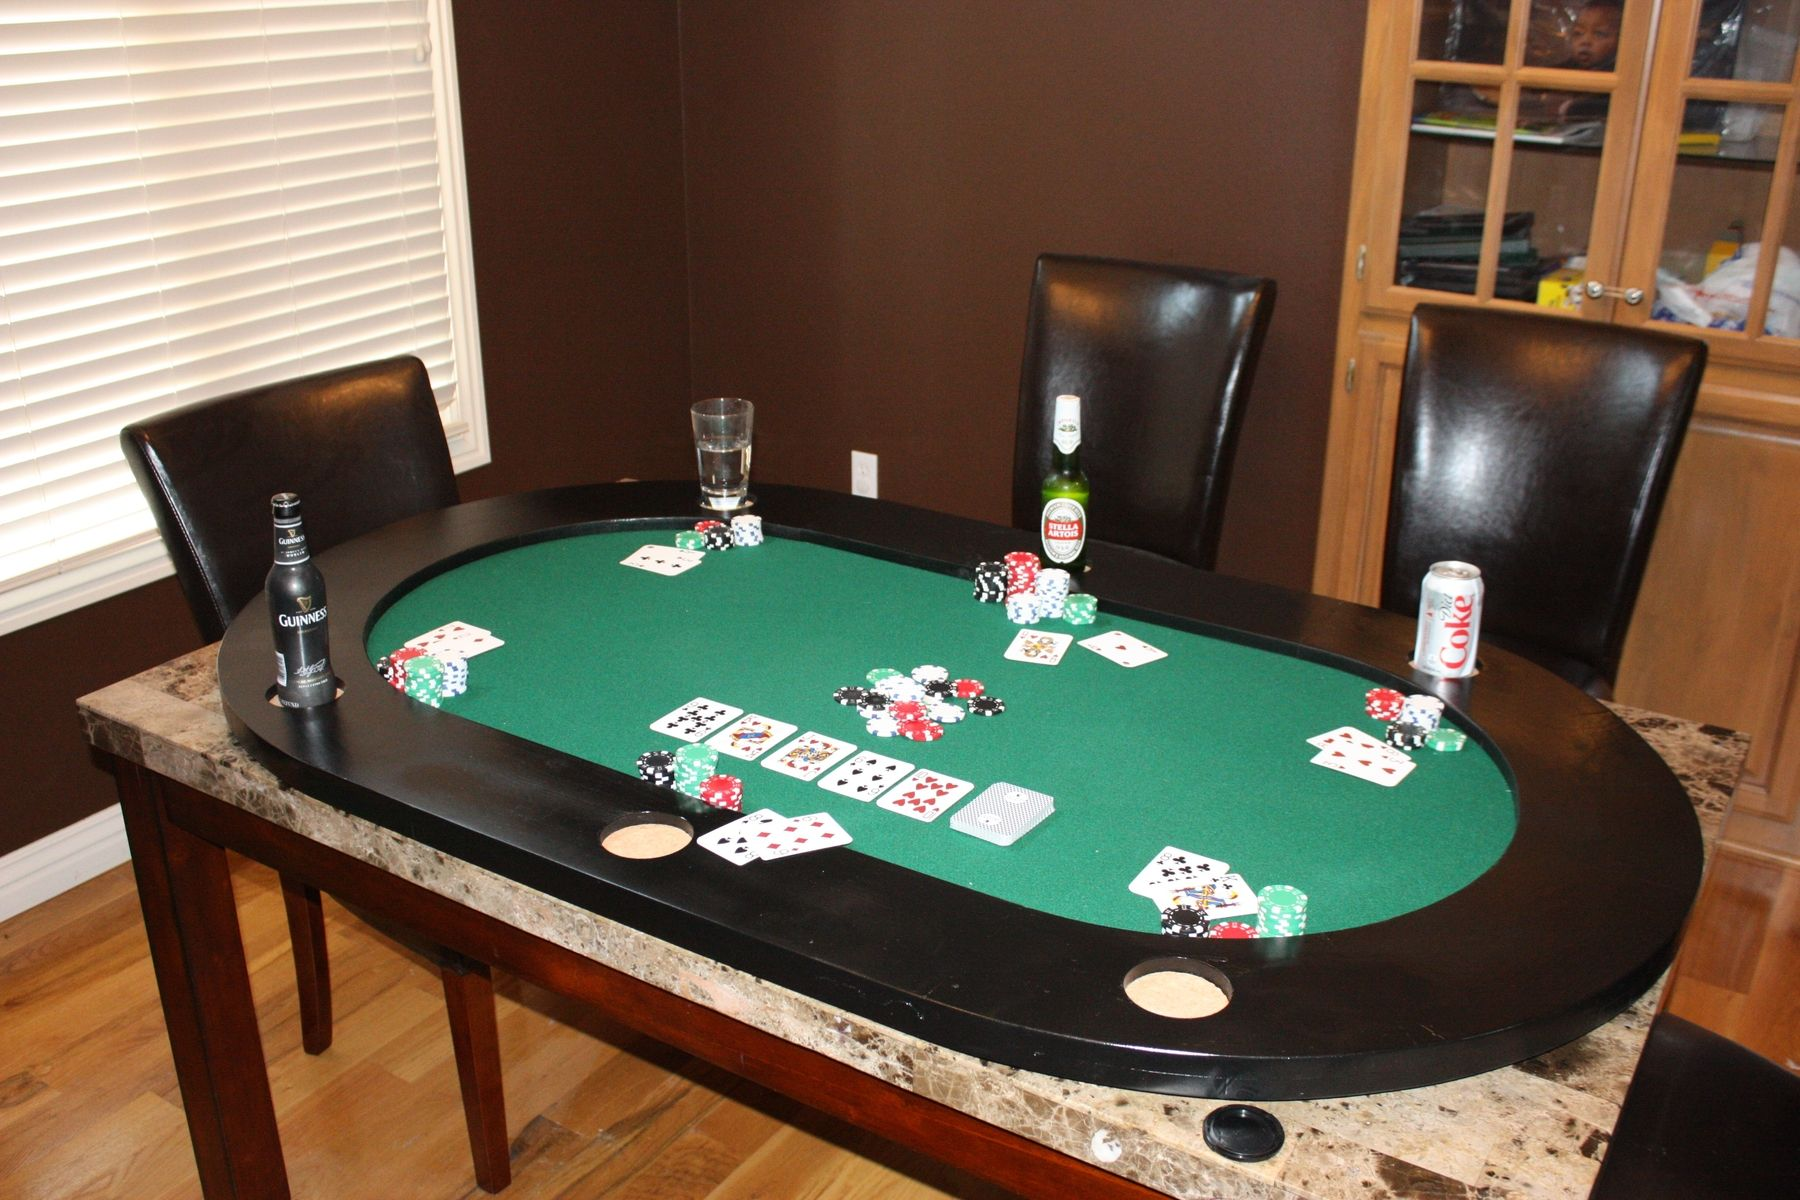 Hand Made Poker Table Top by Scenic View Creations  : 63134179060 from www.custommade.com size 1800 x 1200 jpeg 265kB